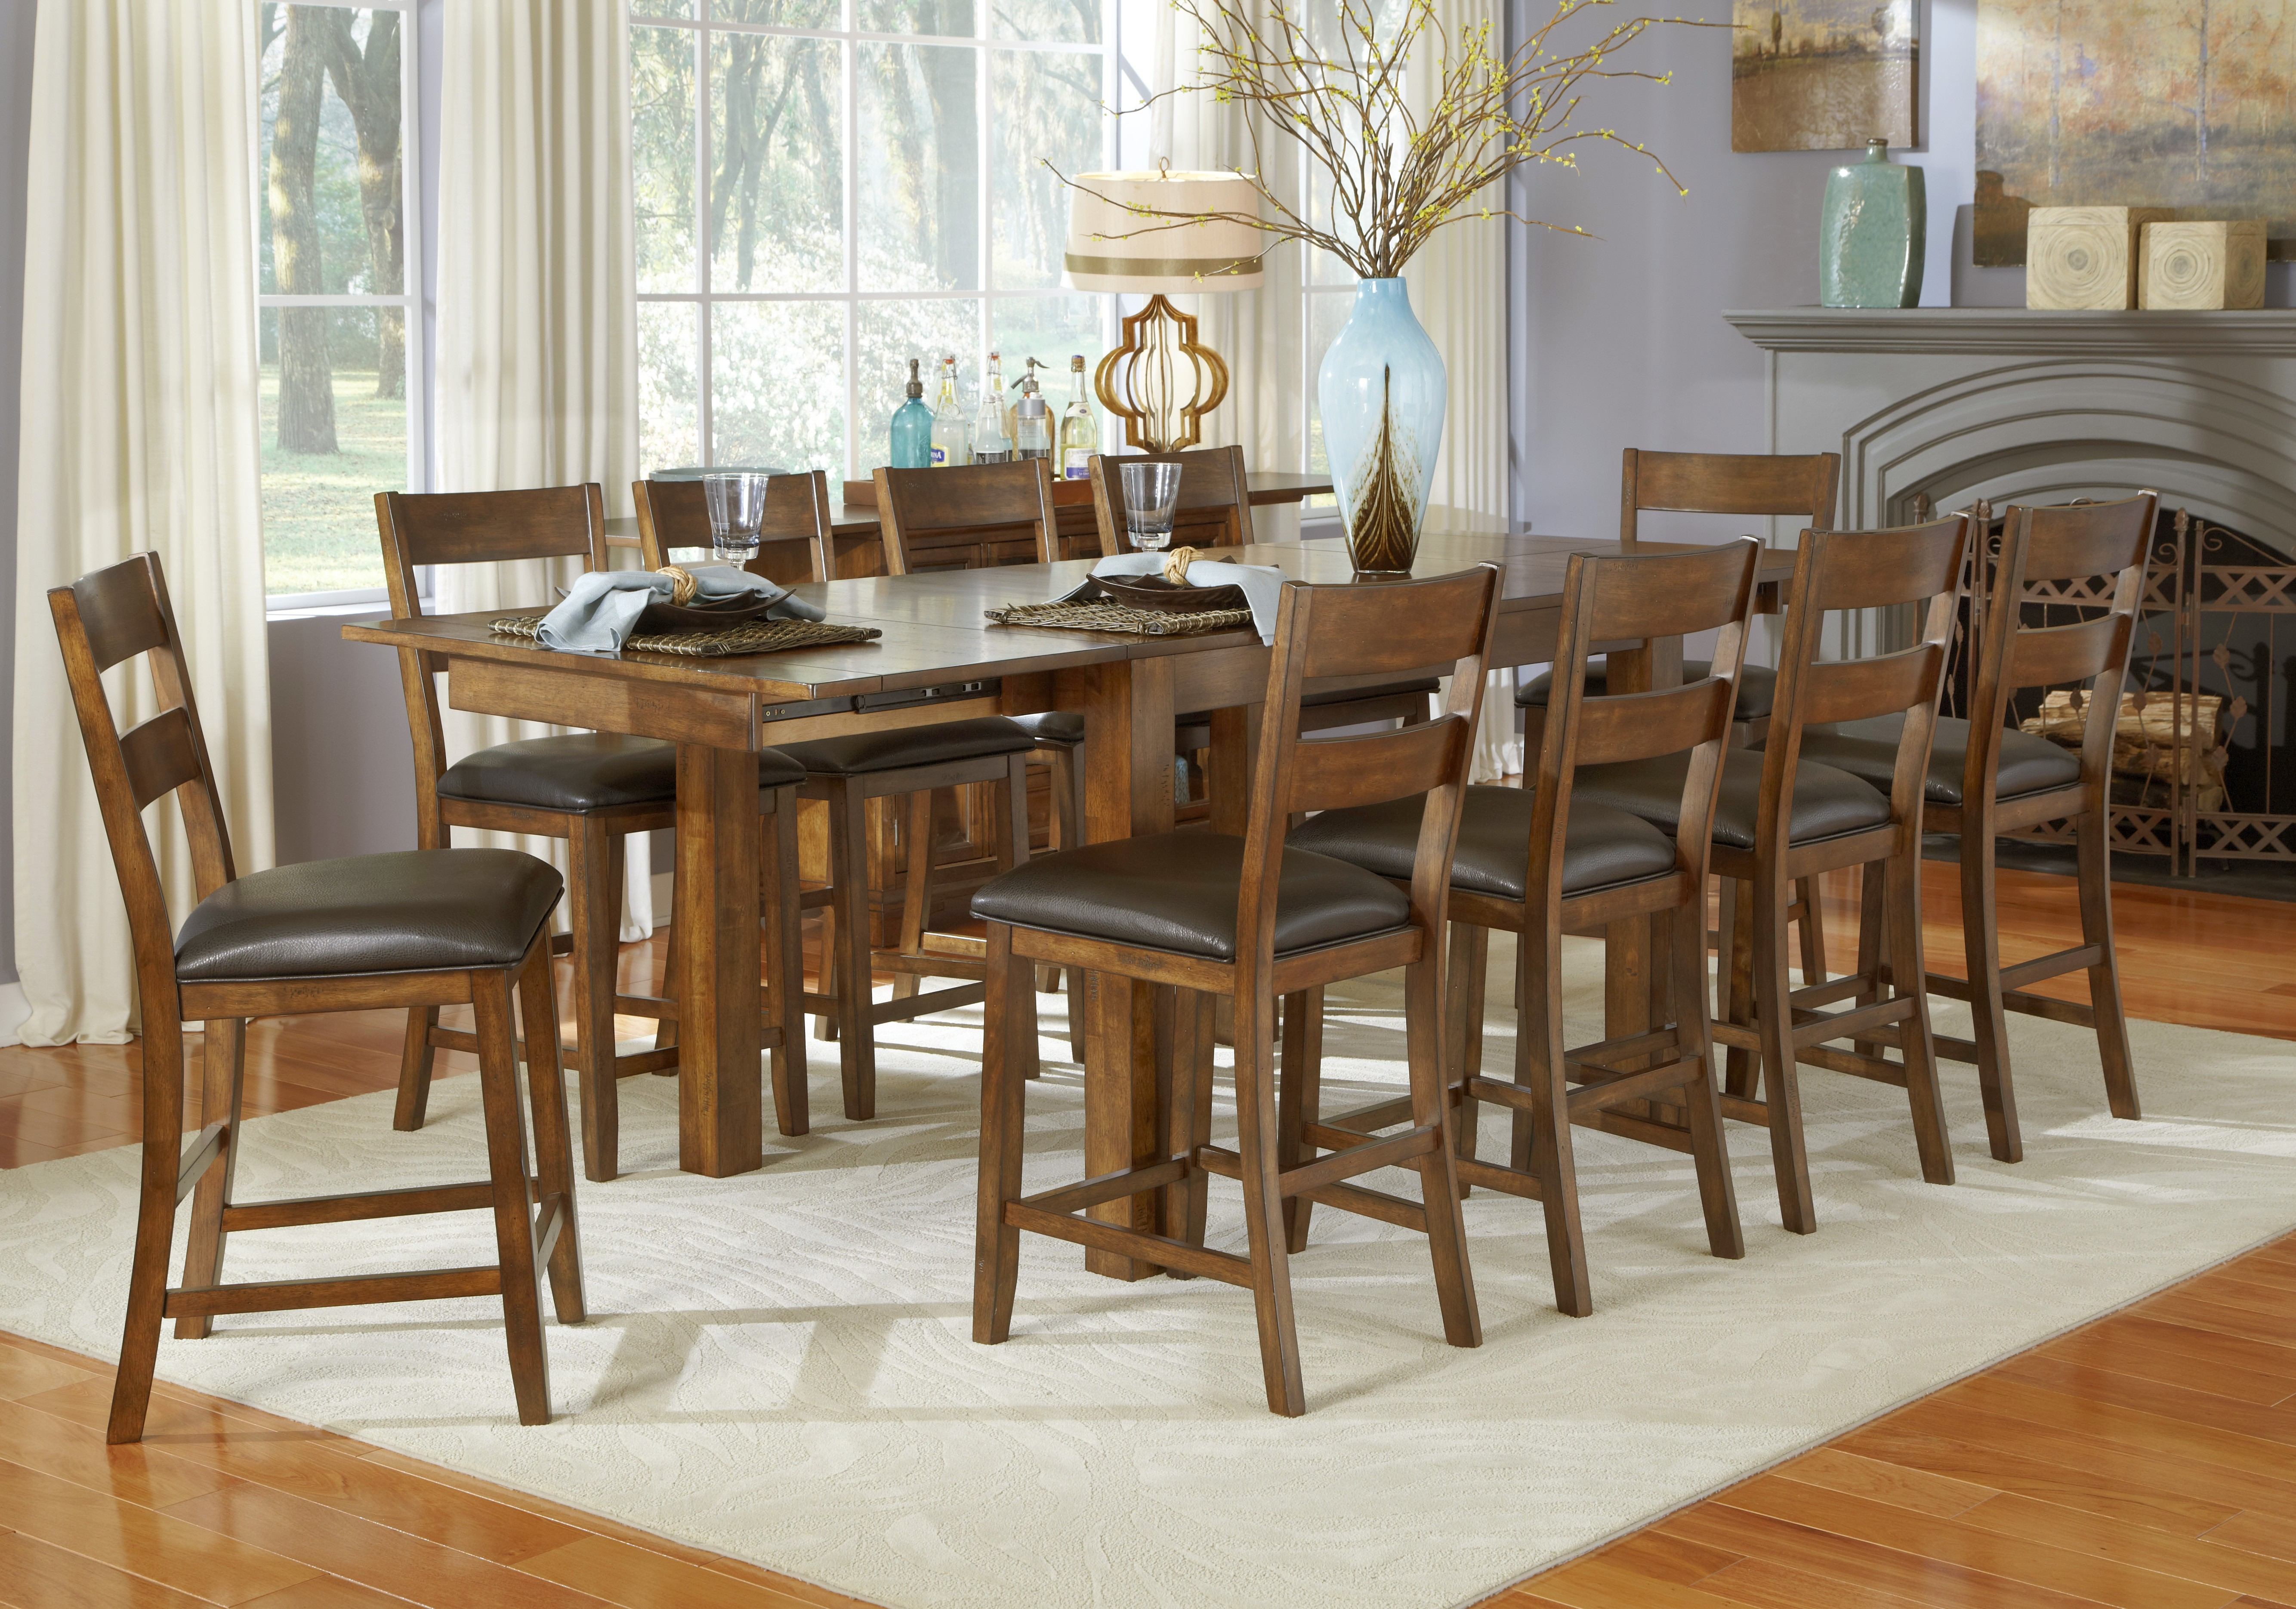 mariposa 100 rustic whiskey extendable counter height leg dining room set from a america. Black Bedroom Furniture Sets. Home Design Ideas